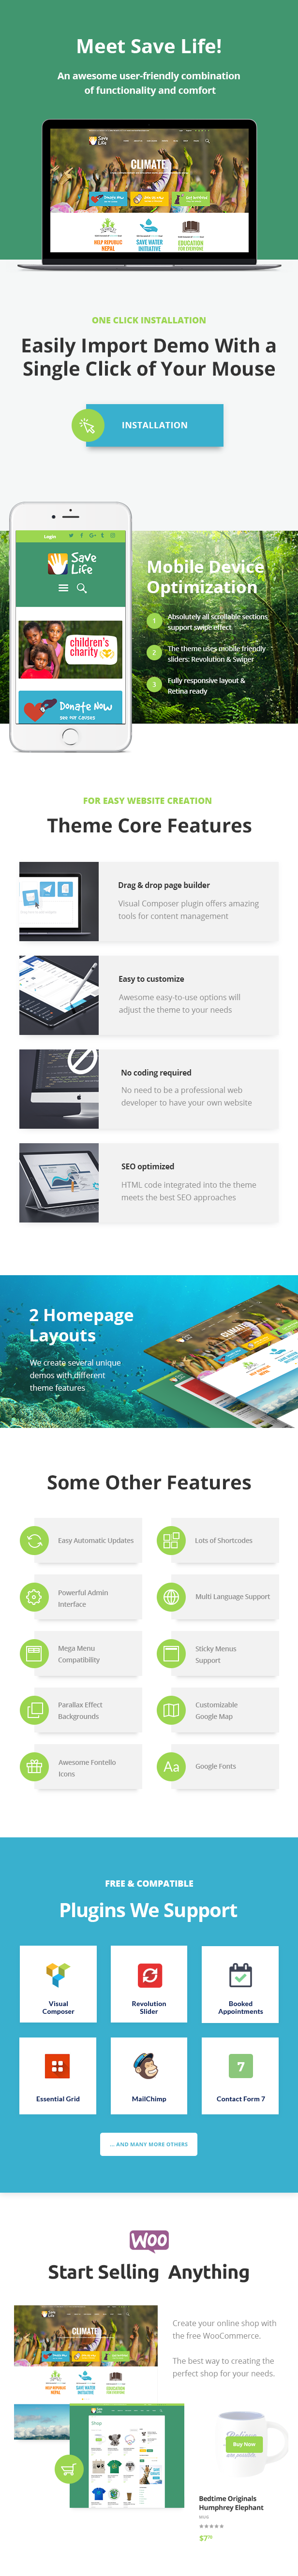 Save Life | Non-Profit, Charity & Donations WordPress Theme - 1